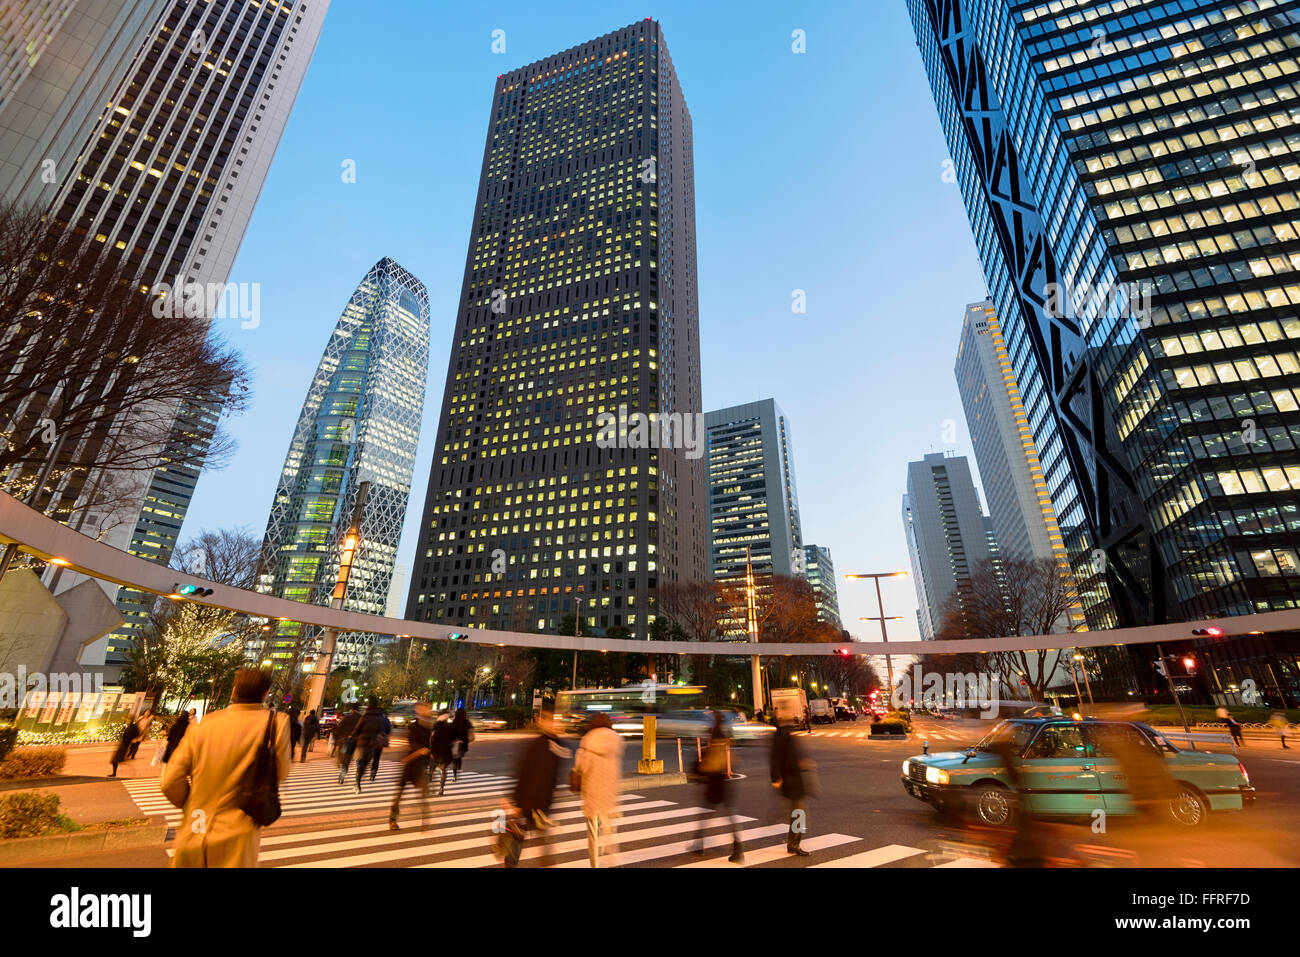 Tokyo, Japan - January 13, 2016: Commuters rushing home after office hours  in Shinjuku, Tokyo - Japan. - Stock Image